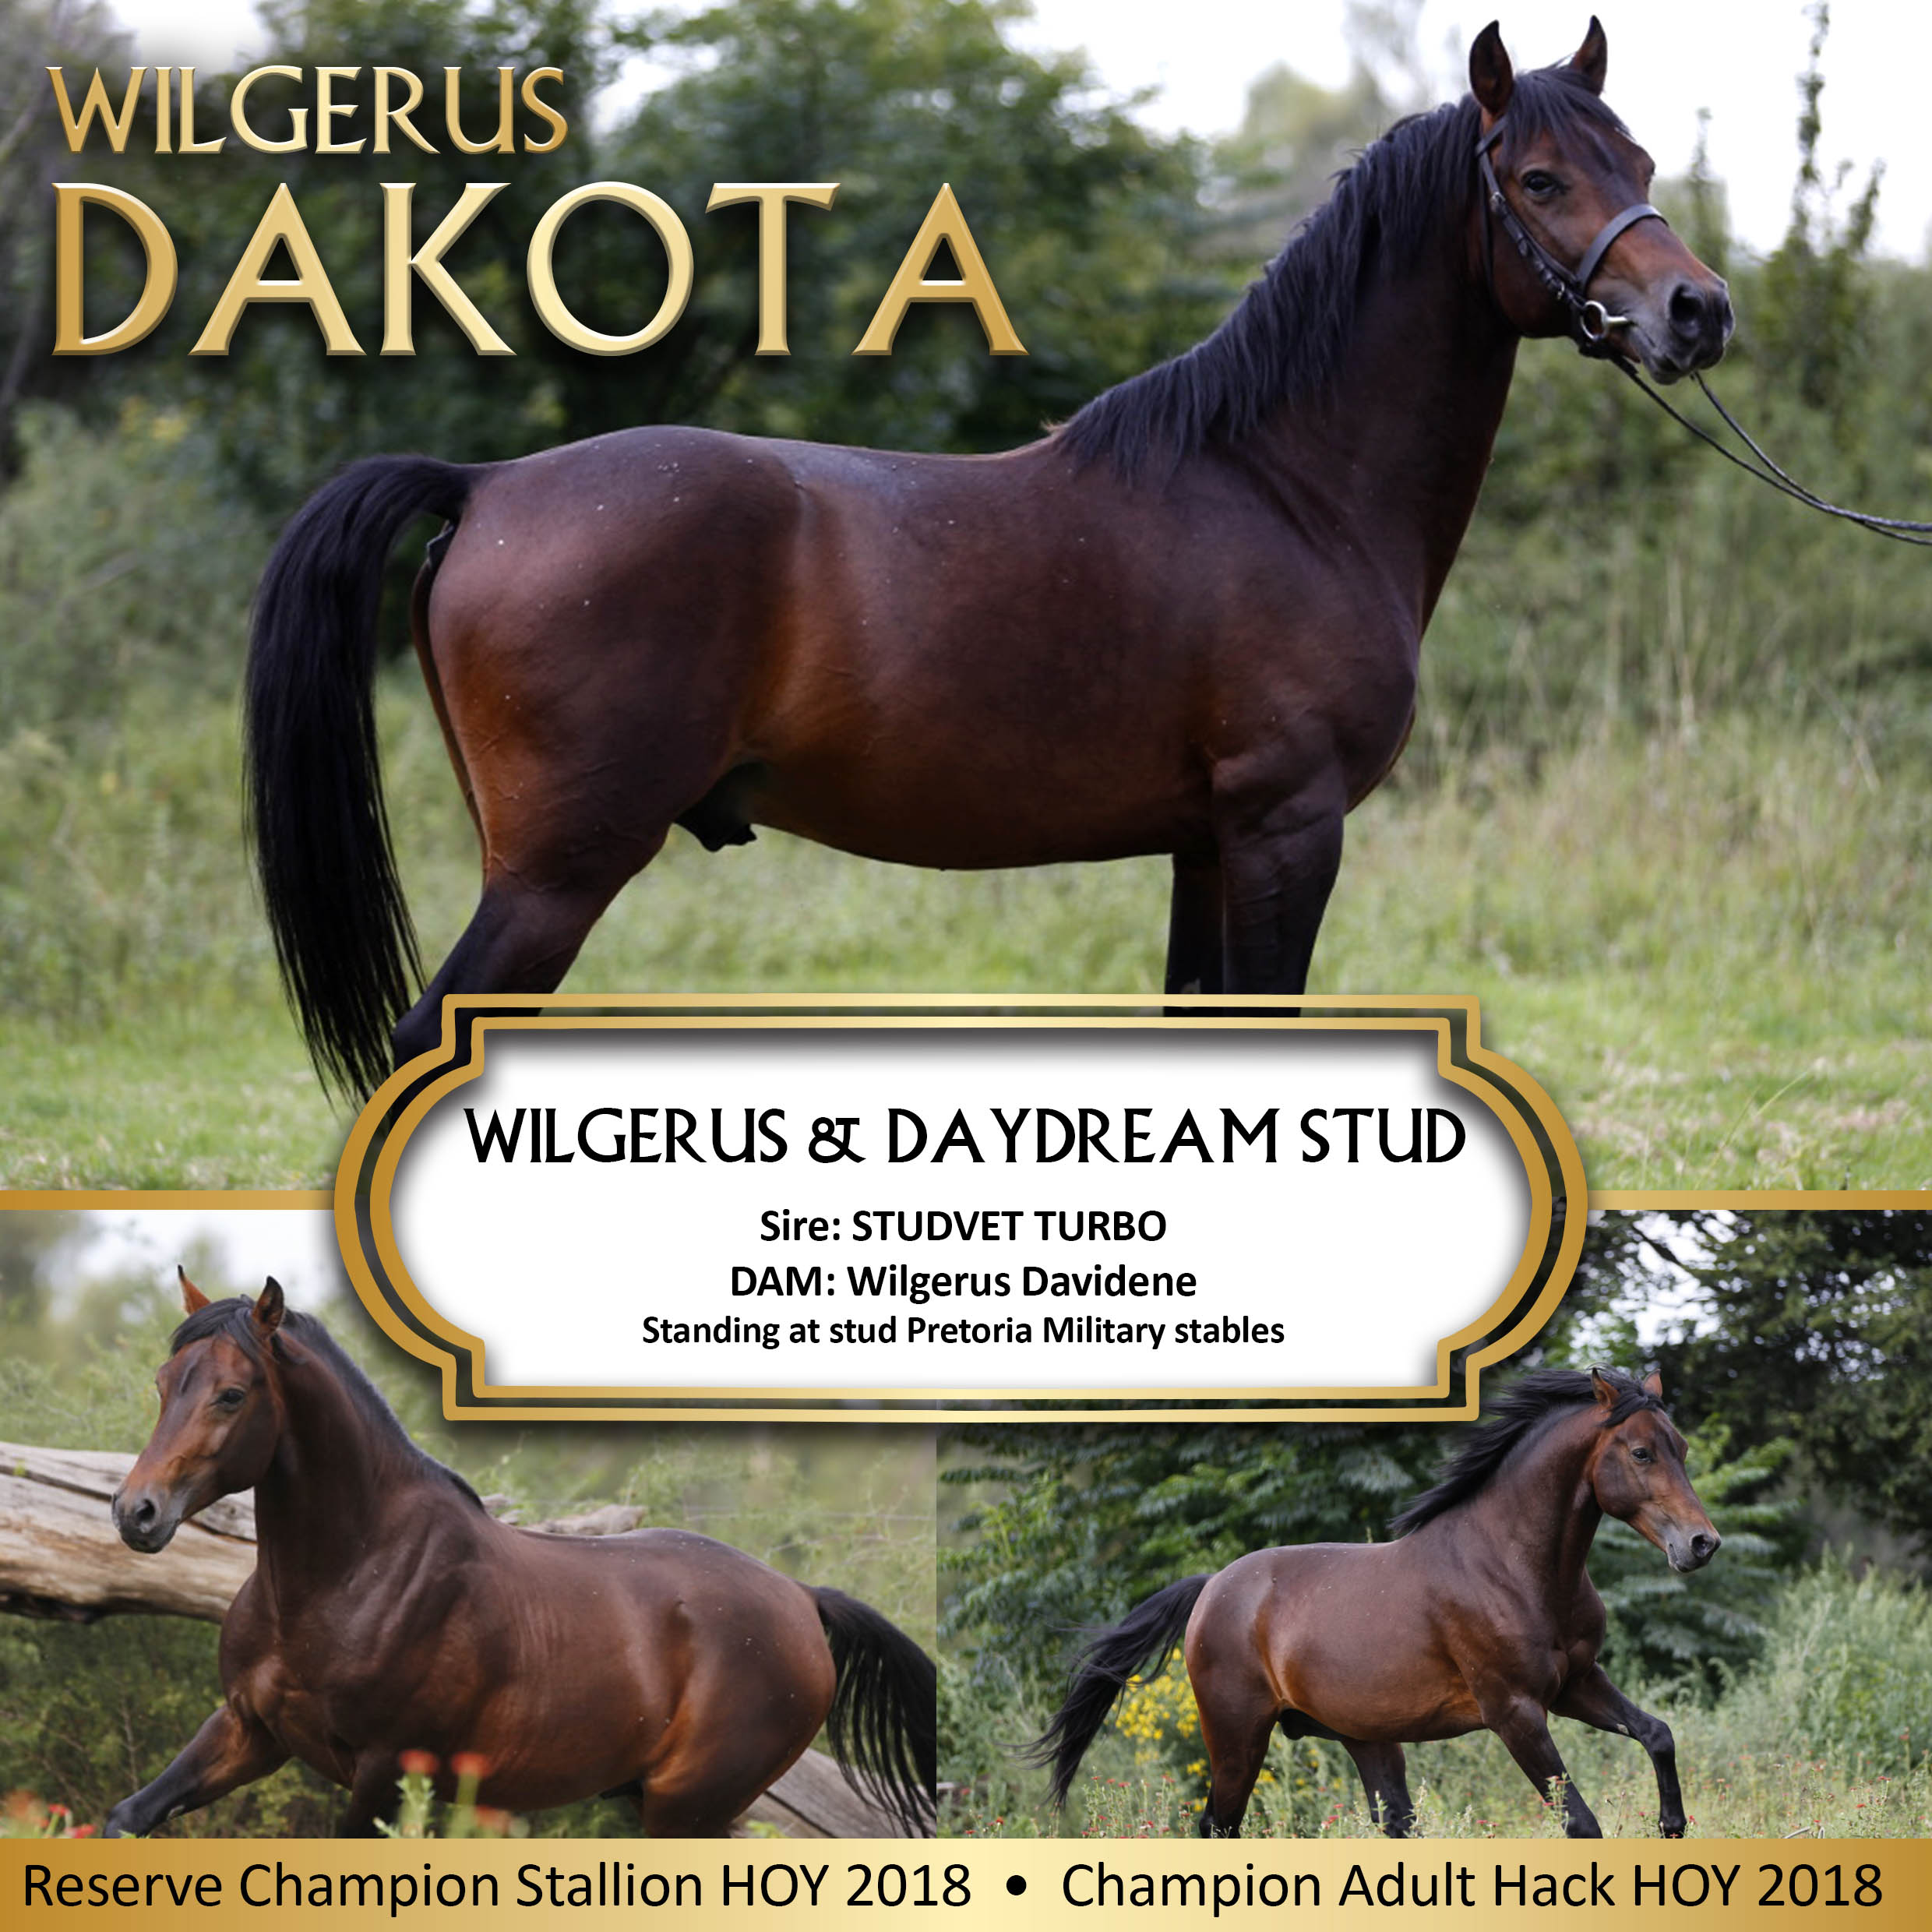 Wilgerus Dakota